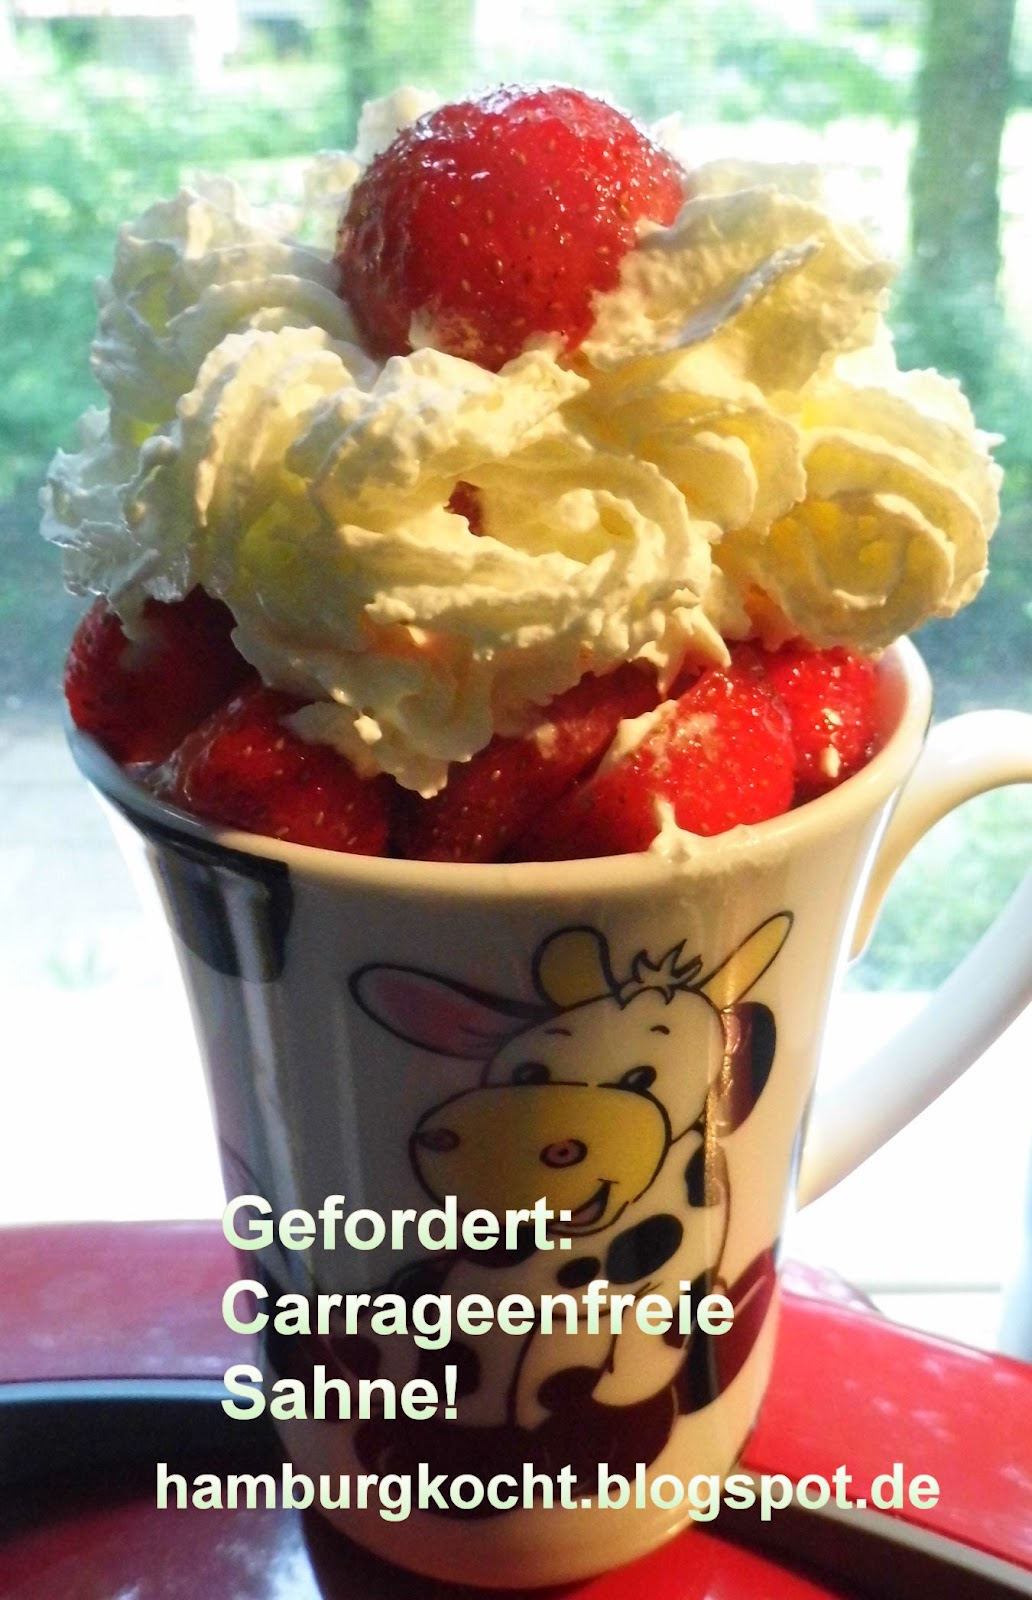 Blog-Event Gefordert: Gebt uns carrageenfreie Sahne!